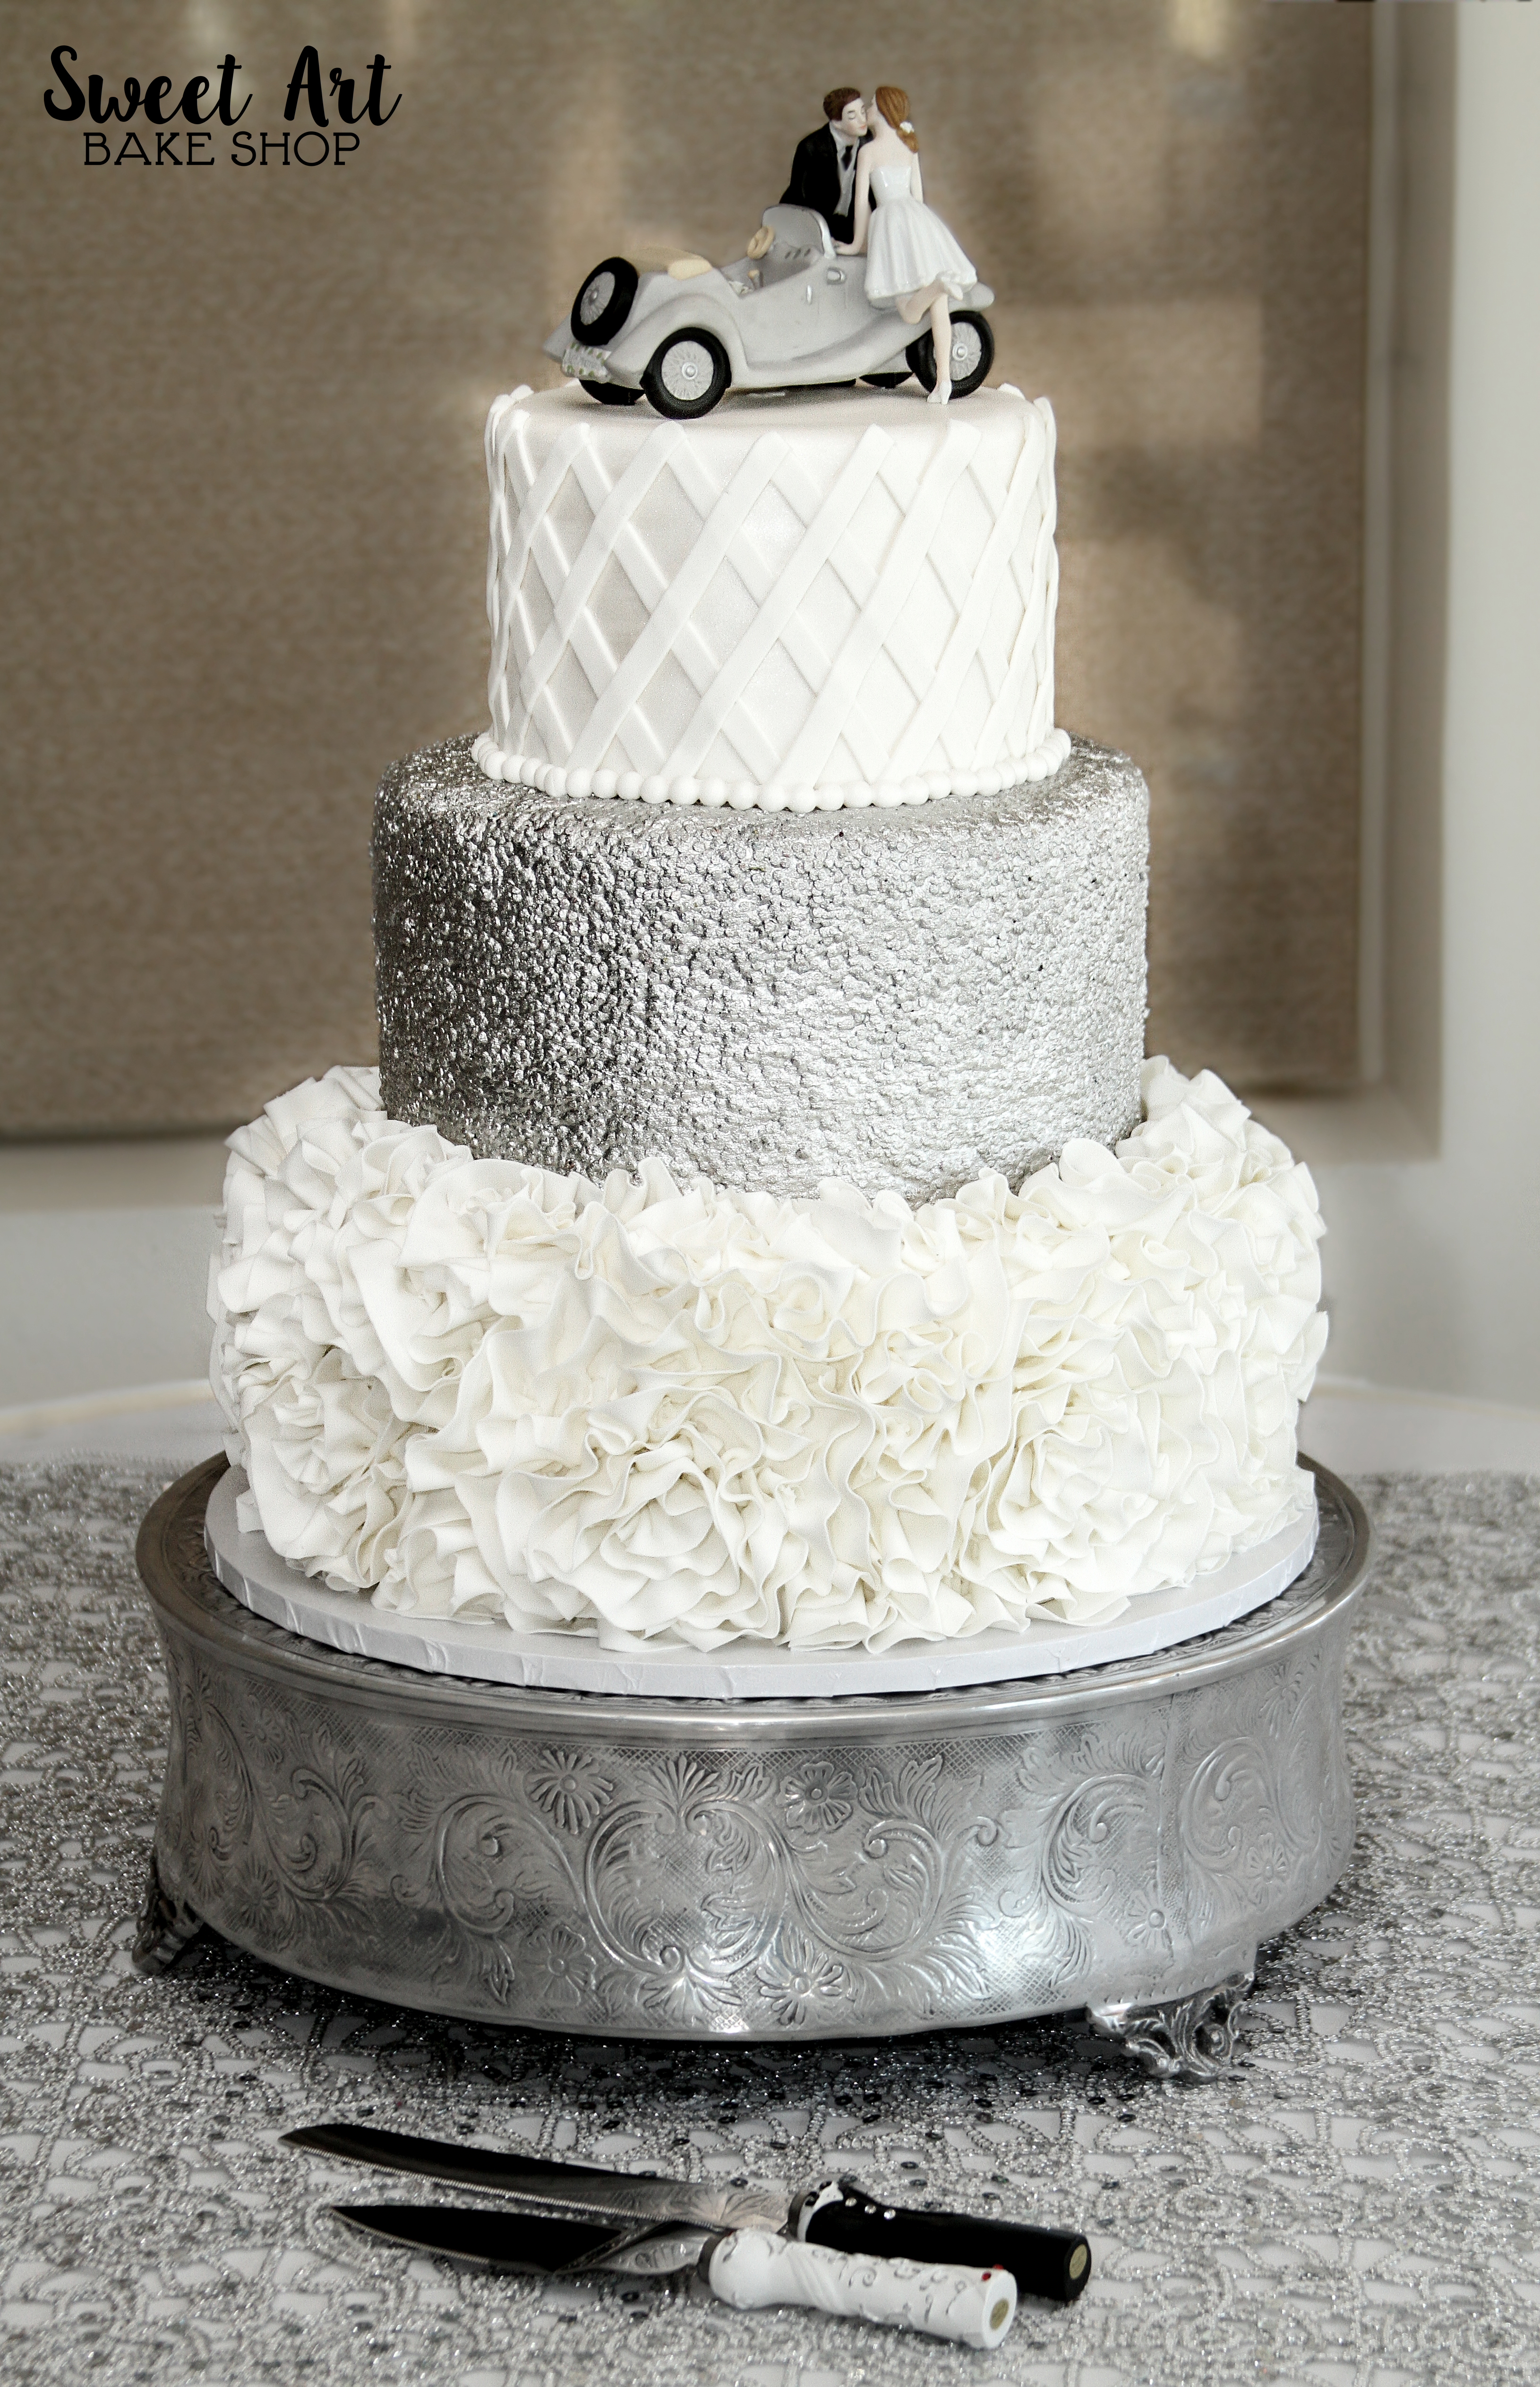 Shoshannah & Kenny's Wedding Cake